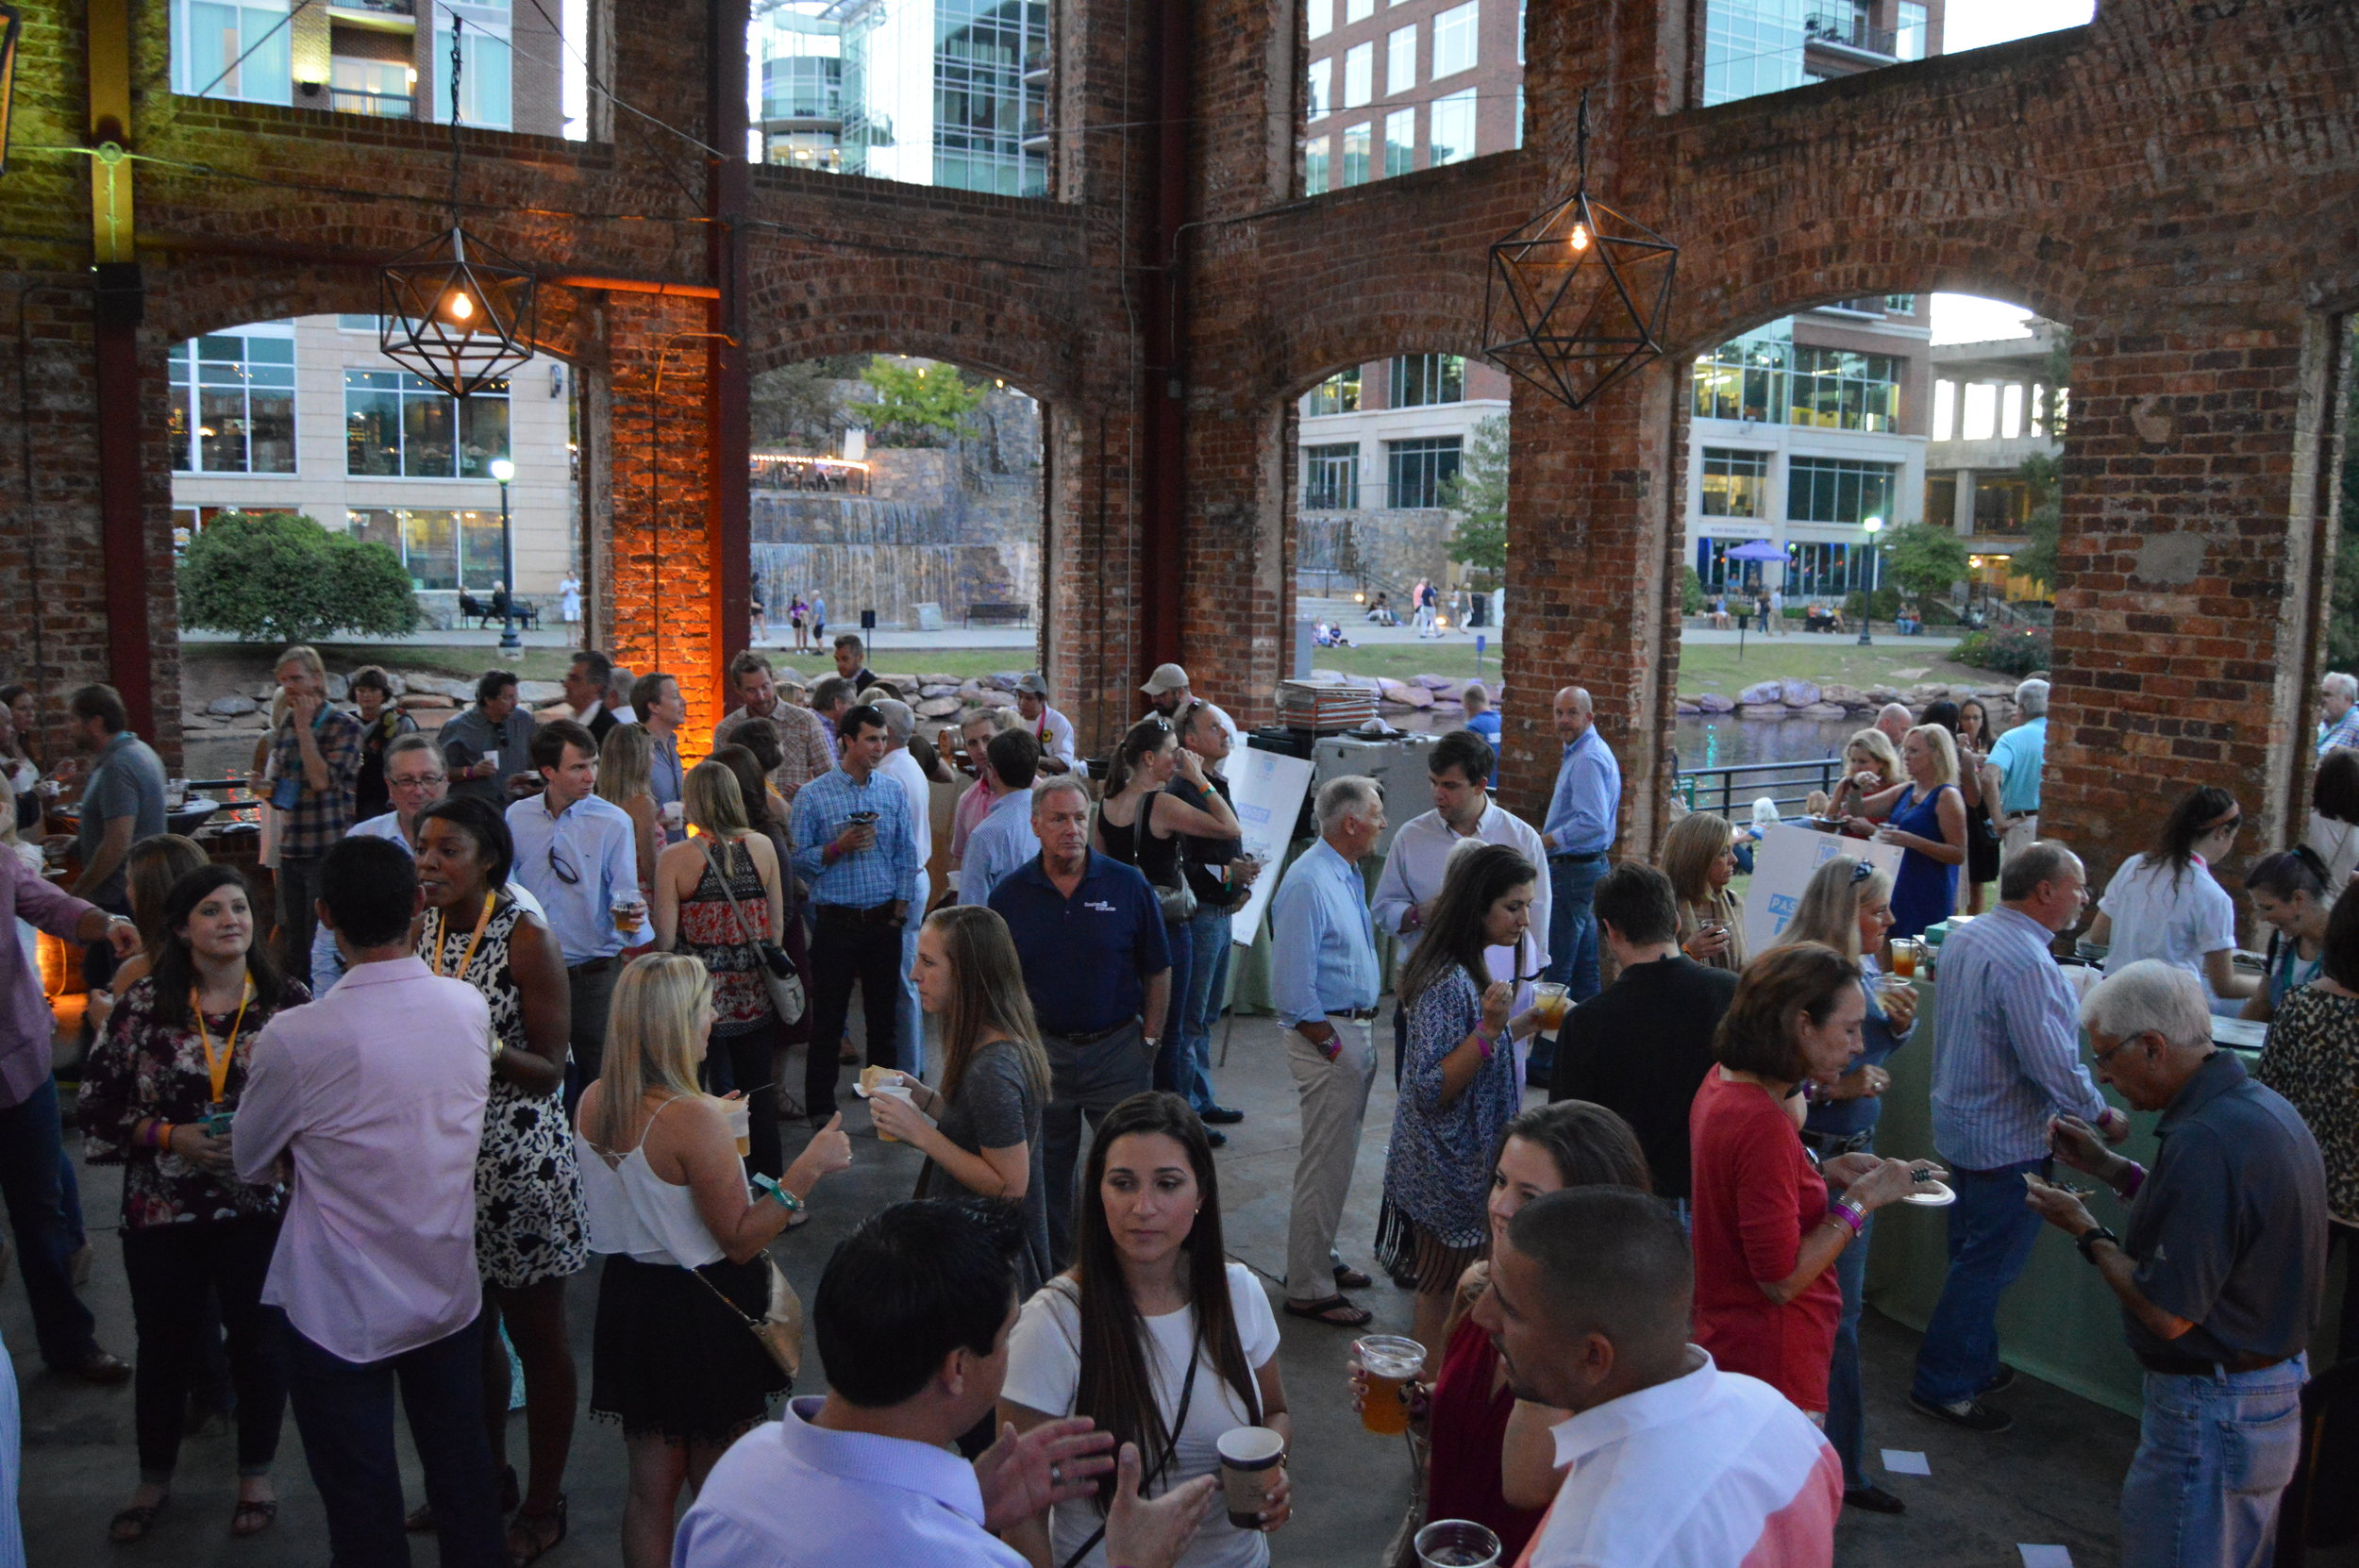 Euphoria Greenville - Food, wine and music come together each September in Downtown Greenville, South Carolina to create